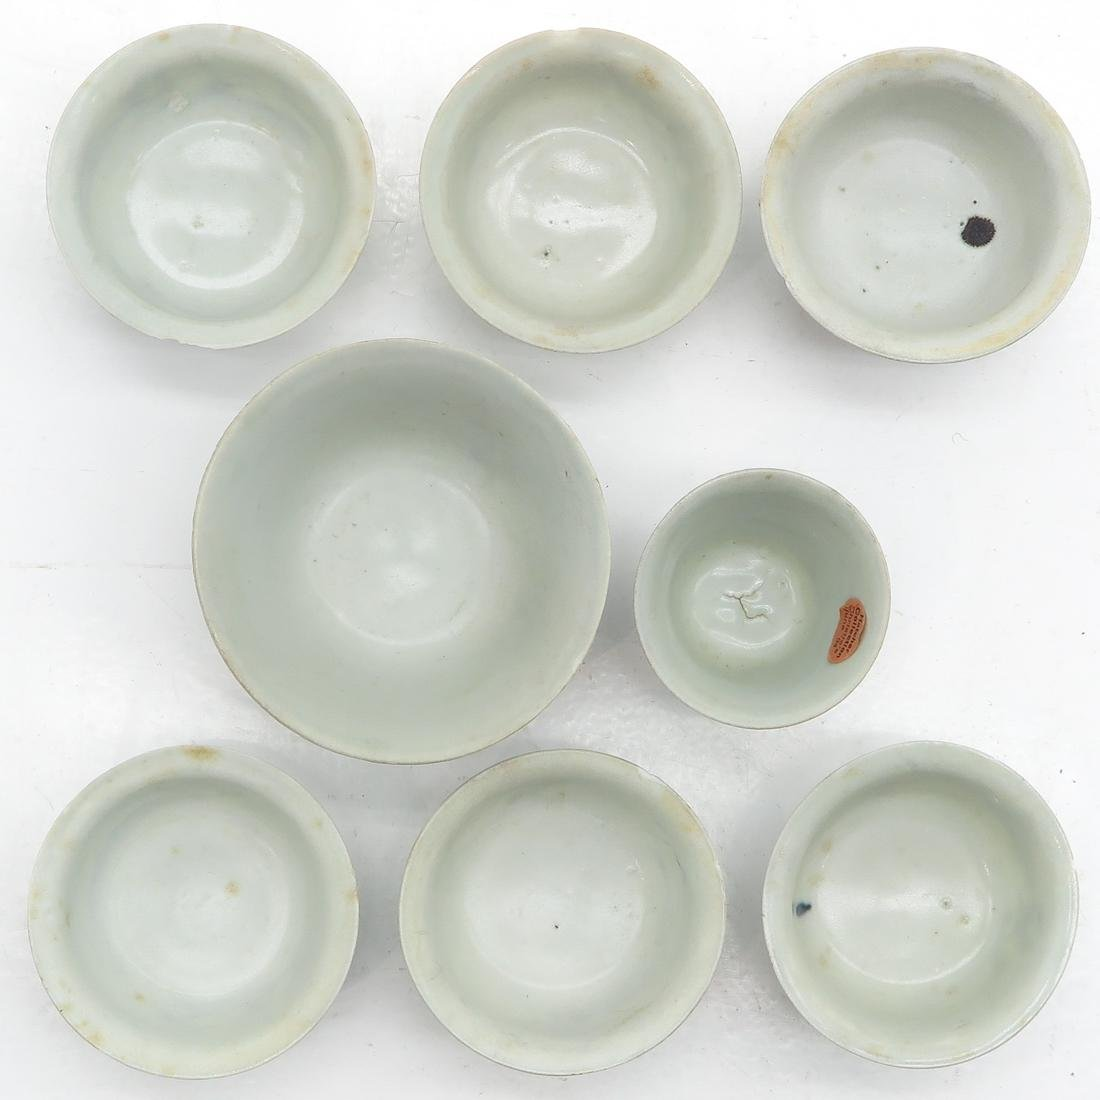 Lot of 8 Small Cups - 5